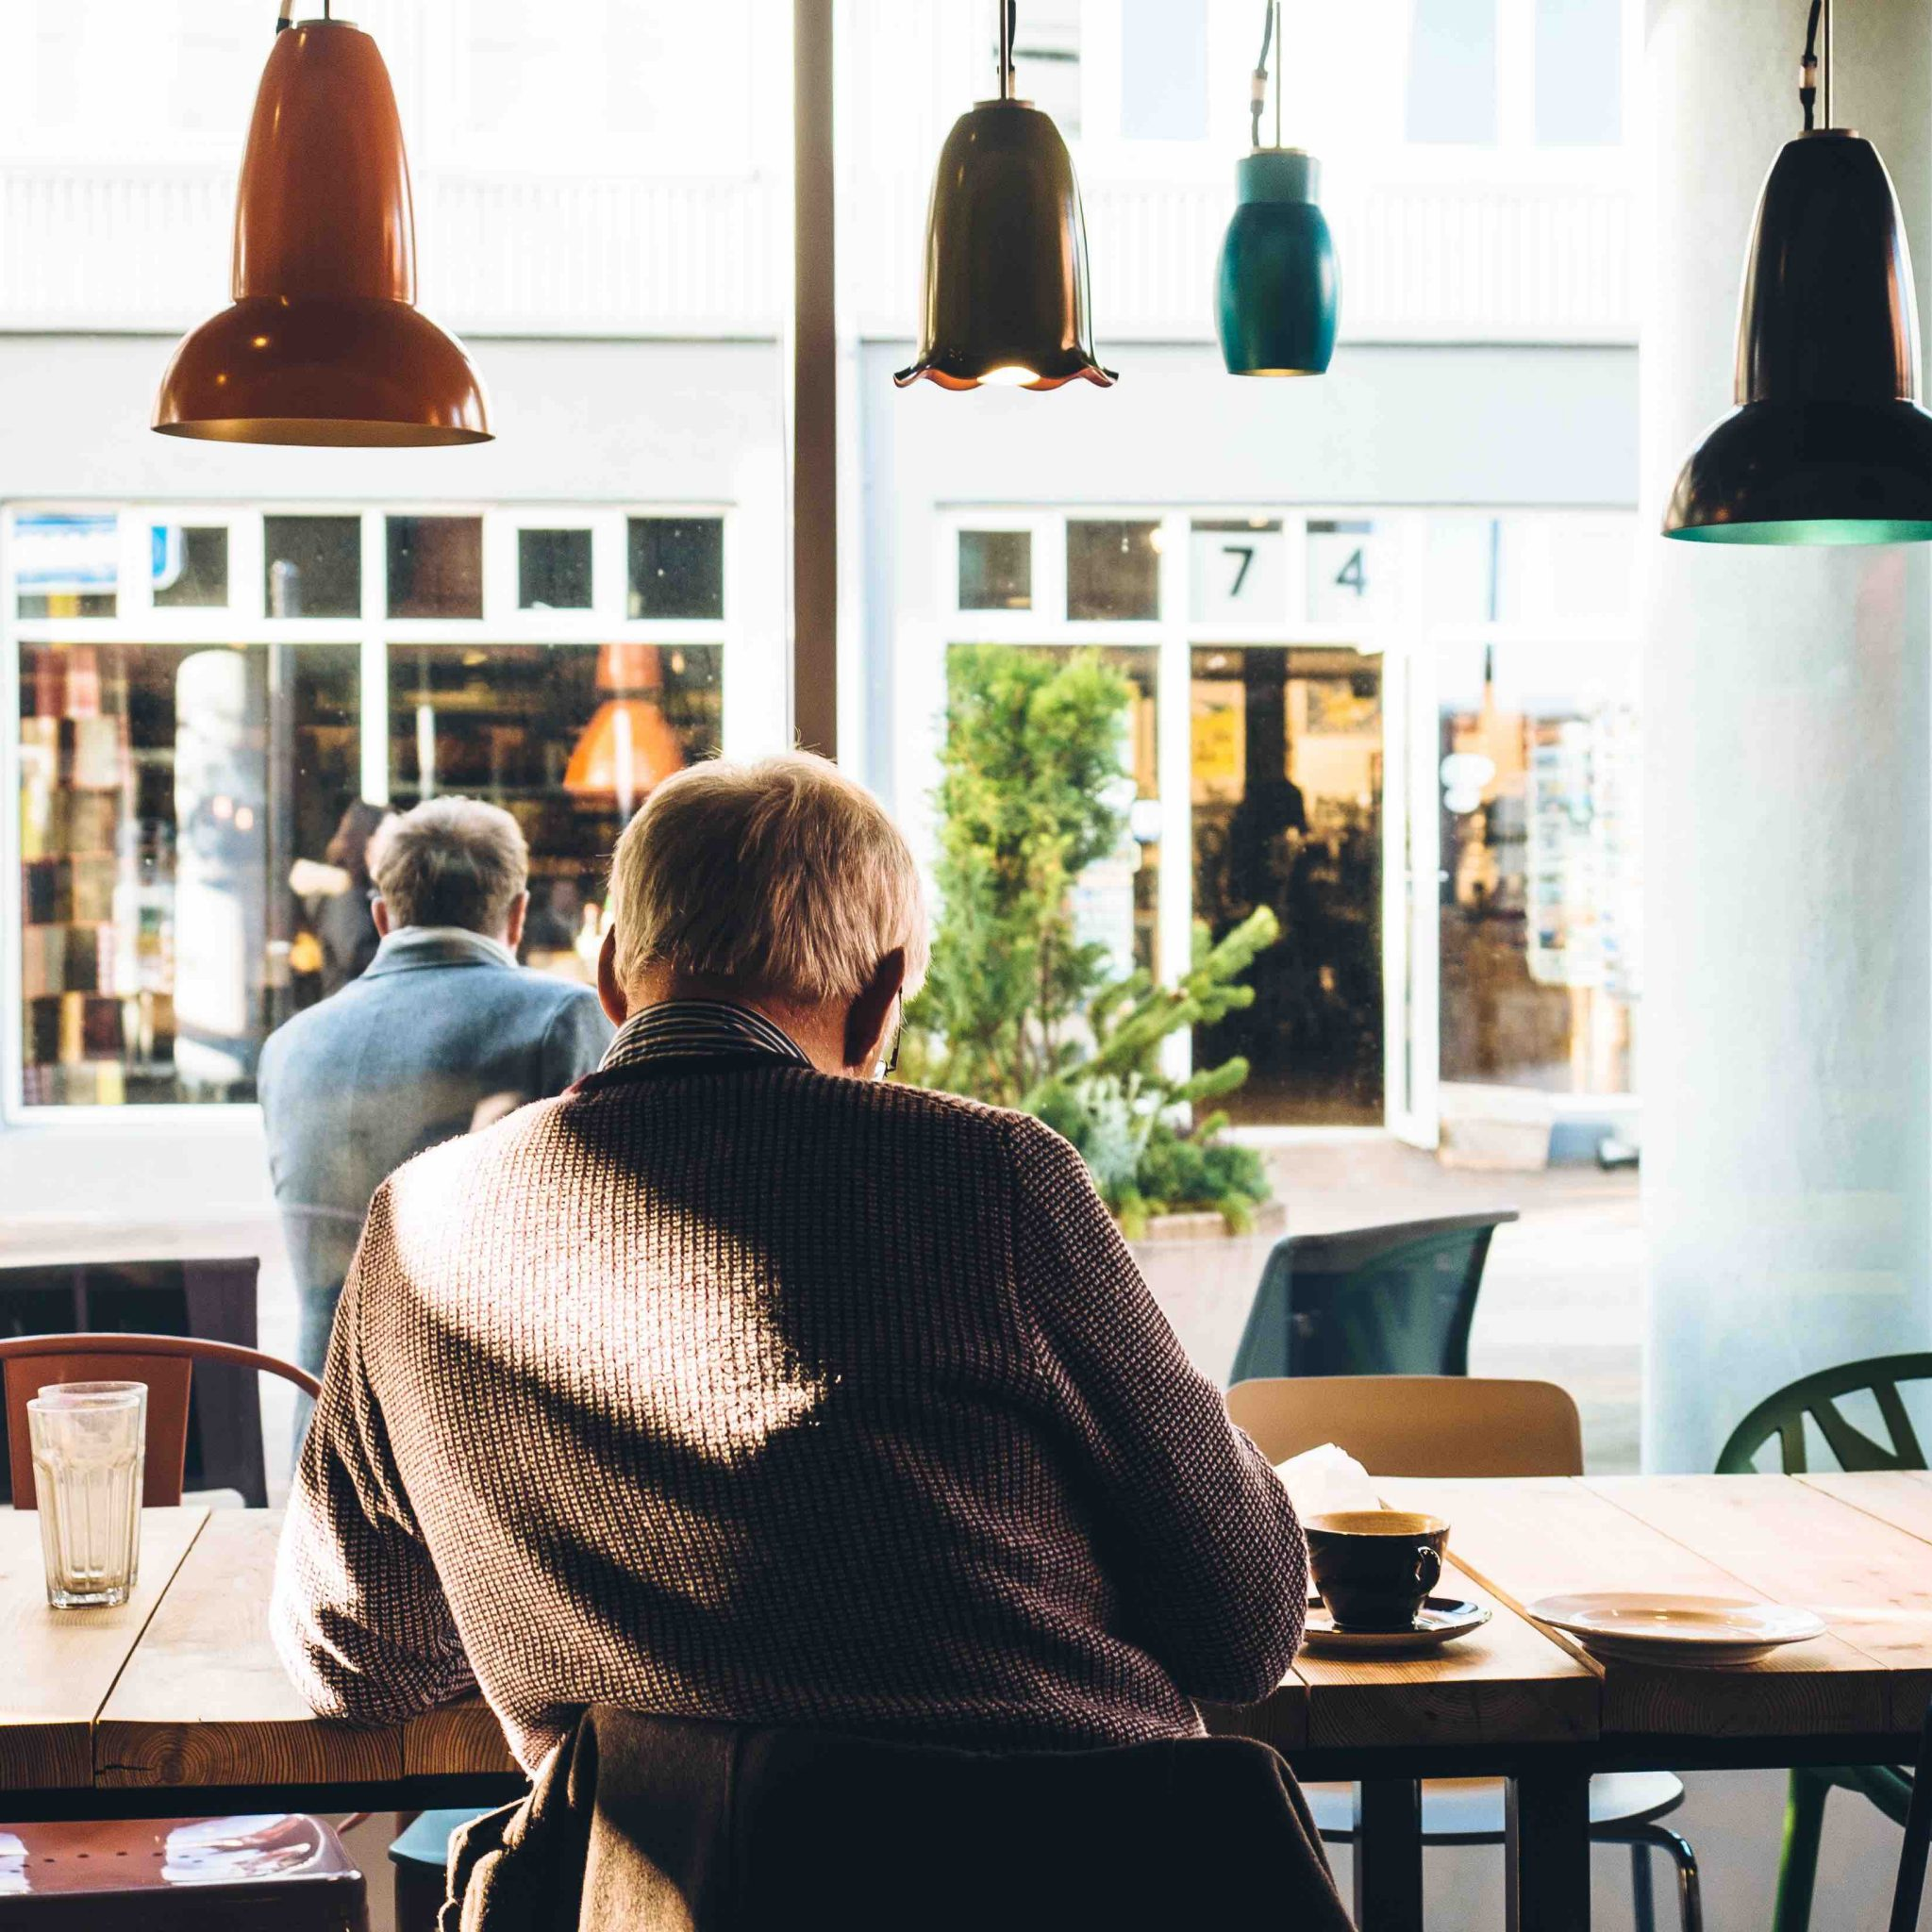 man who can't hear in cafes